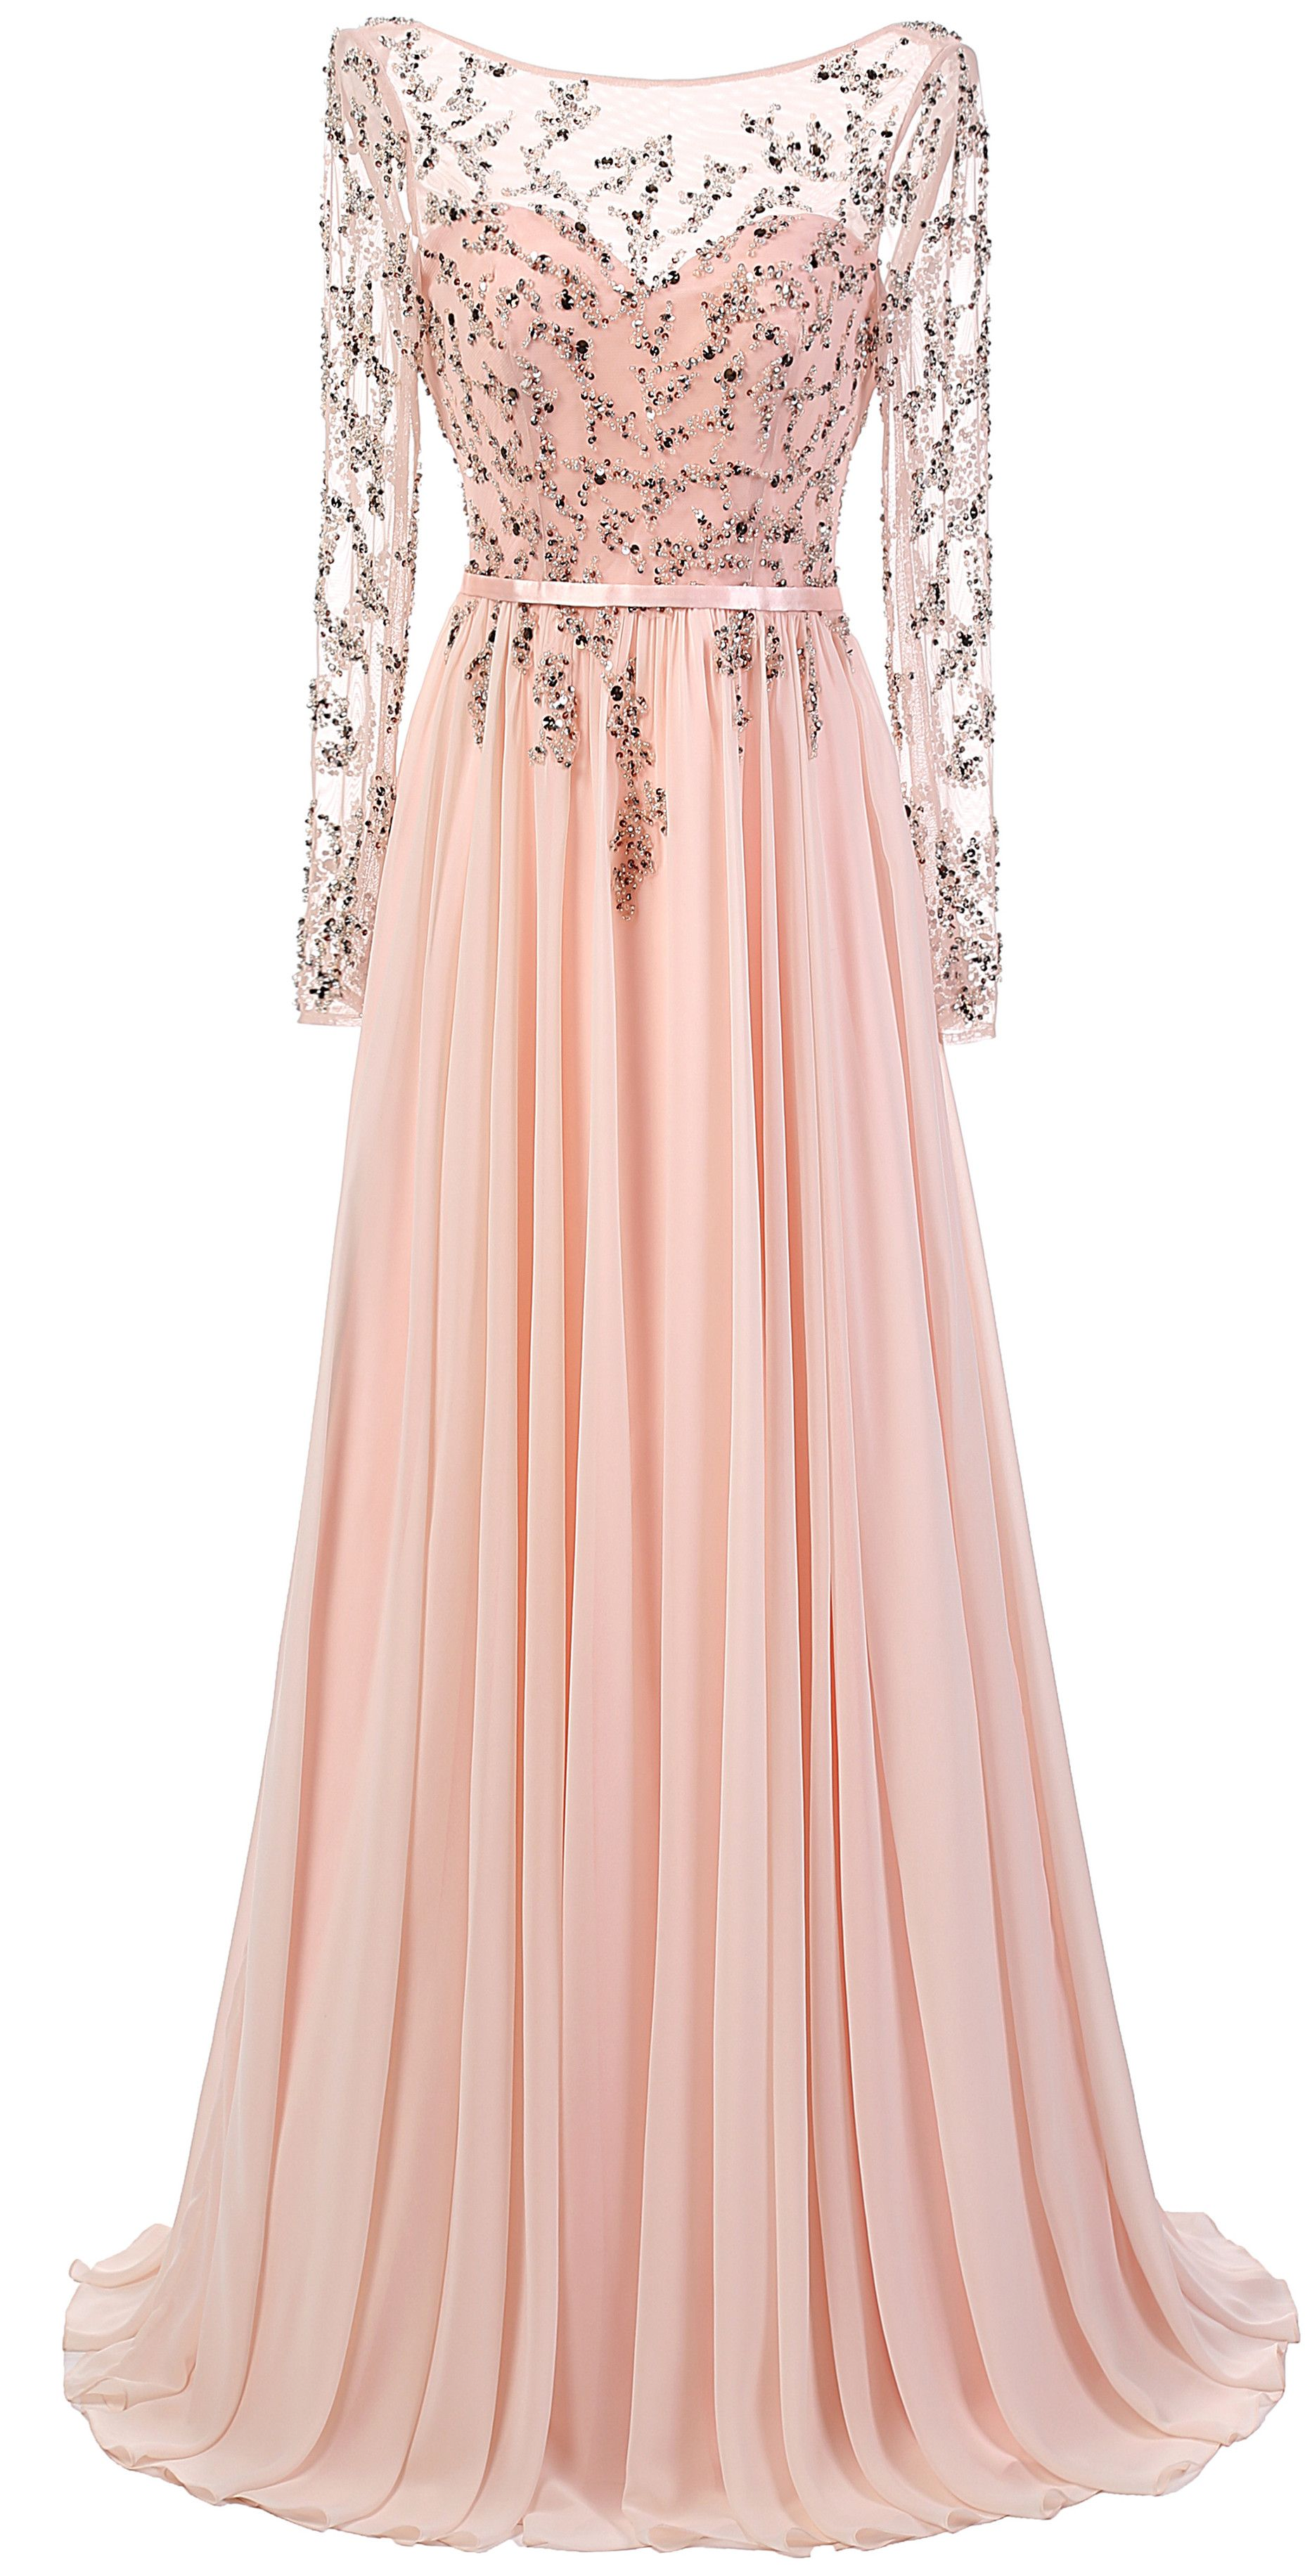 diyouth.com Charming Prom Dress,Chiffon Prom Dress,Backless Prom ...